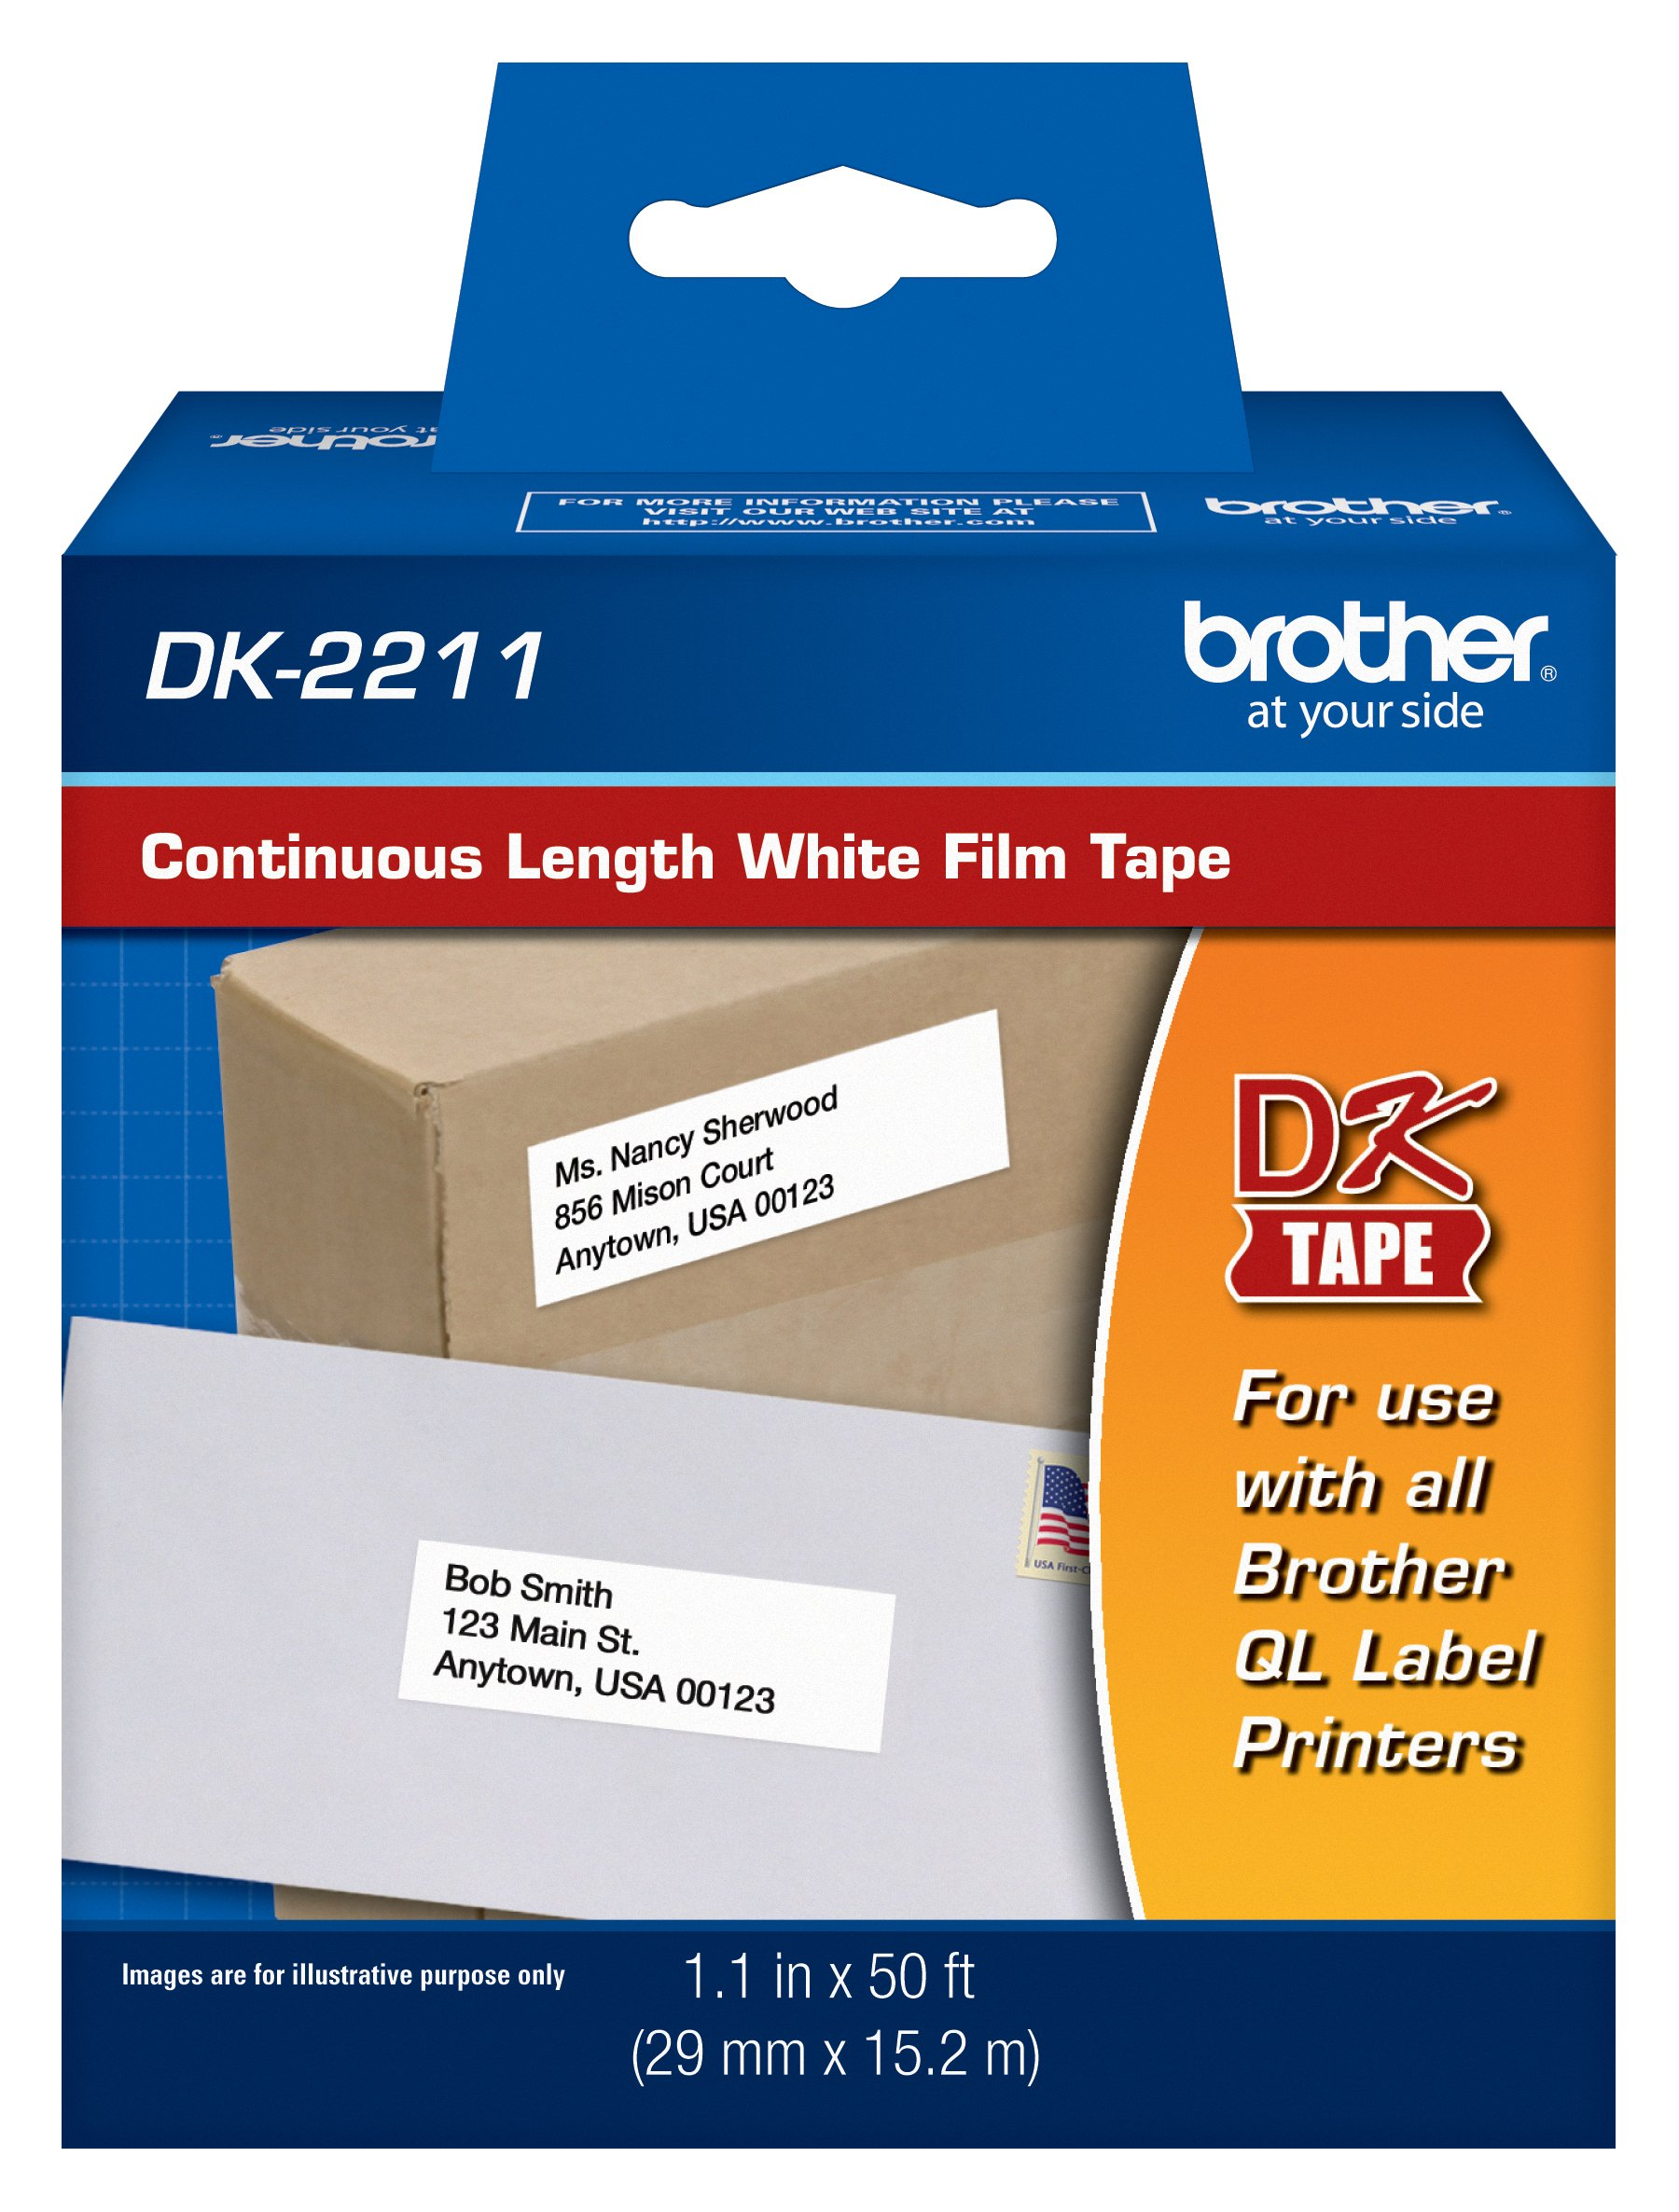 Brother Genuine DK-2211 Continuous Length Black on White Film Tape for Brother QL Label Printers, 1.1'' x 50' (29mm x 15.2M), 1 Roll per Box, DK2211